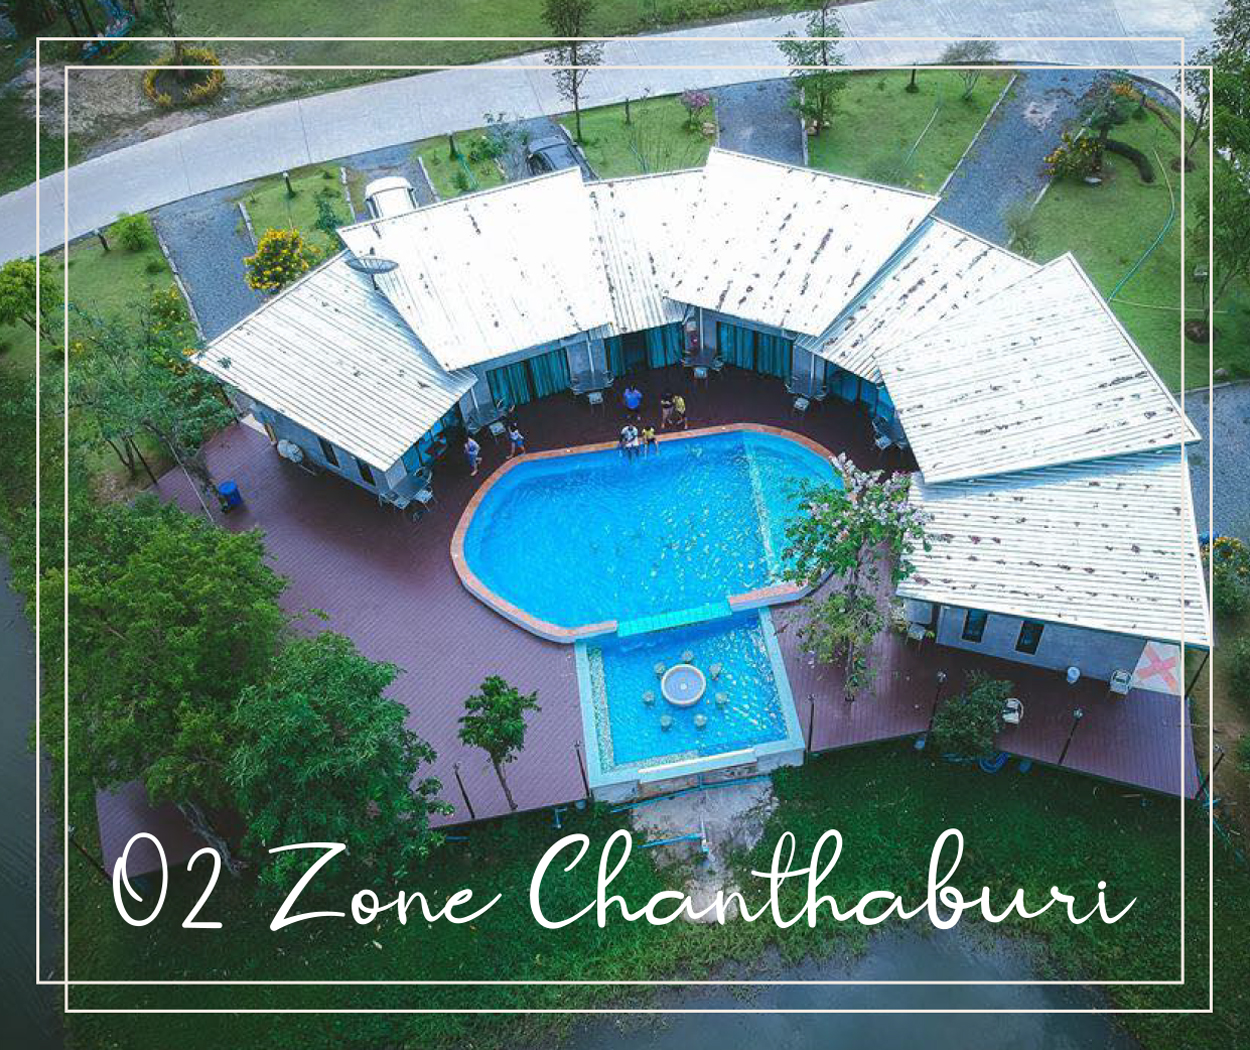 O2 Zone Chanthaburi